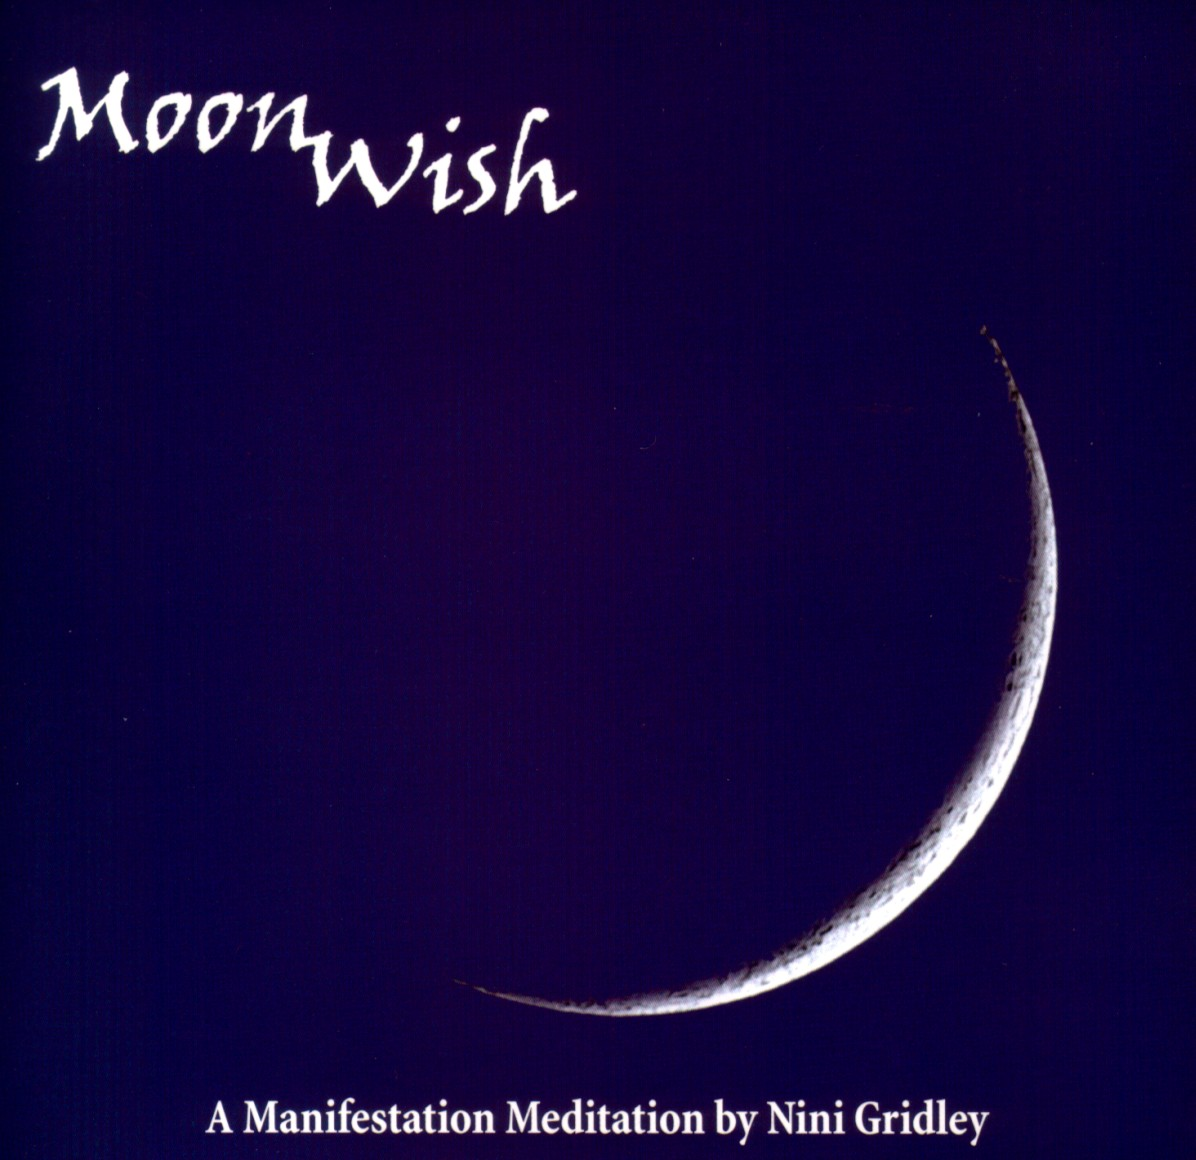 """New Moon Meditations  The """"Dark of the Moon"""" is a stressful time. The New Moon following is the best time to begin again. Nini has been leading the """"New Moon Meditation"""" every month since it's inception in 2003 at Kripalu Center. This meditation is offered by donation. It is scheduled from 7:00-8:30 PM after the exact times listed below when the light of the Moon is returning. Check the workshop page for details.  MoonWishing is an ancient practice which aligns conscious intentions, wishes and prayers, with Divine energy flow. By attuning to the natural cycle, the wax and wane of the moon's light, we bring the light of consciousness to our future creations. Wishes come true through co-creation with the Universe when we catch the wave of increasing light and align it with our own energy field.  Meditating on your intentions at the time of the New Moon by MoonWishing energizes the """"Manifesting Current"""" of the chakras and increases the probability that your wish will come true. You can attend a """"New Moon Meditation"""" circles in person or listen to the  MoonWish meditation soundtrack  on your own. What do you wish for? Ask the Universe and make it so...   The New Moons of 2018   Tuesday,  January 16th at 9:18 PM  - EST  Thursday,  February 15th at 4:06 PM  - EST  Saturday,  March 17th at 9:14 AM  - EDT  Sunday,  April 15th at 9:59 PM  - EDT  Tuesday,  May 15th at 7:49 AM  - EDT  Wednesday,  June 13th at 3:45 PM  - EDT  Thursday,  July 12th at 10:49 PM  - EDT  Saturday,  August 11th at 5:59 AM  - EDT  Sunday,  September 9th at 2:02 PM  - EDT  Monday,  October 8th at 11:47 PM  - EDT  Wednesday,  November 7th at 11:02 AM  - EST  Friday,  December 7th at 2:21 AM  – EST   For best results make your MoonWish very soon after the exact time!"""